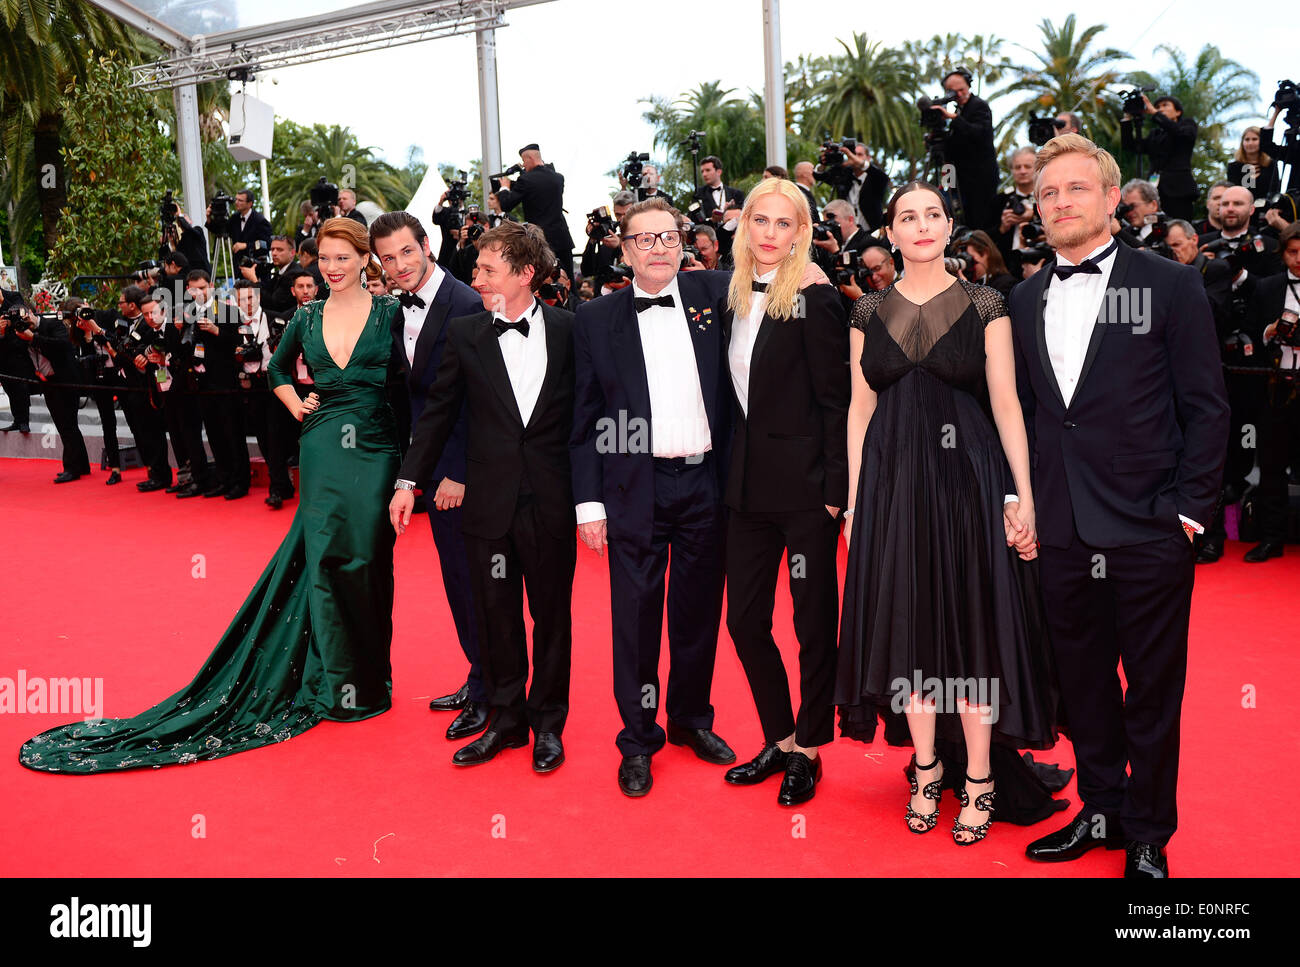 Cannes, France. 17th May, 2014. Cast members and guests arrive for the screening of the film Saint Laurent at the 67th Cannes Film Festival in Cannes, France, May 17, 2014. Credit:  Ye Pingfan/Xinhua/Alamy Live News - Stock Image